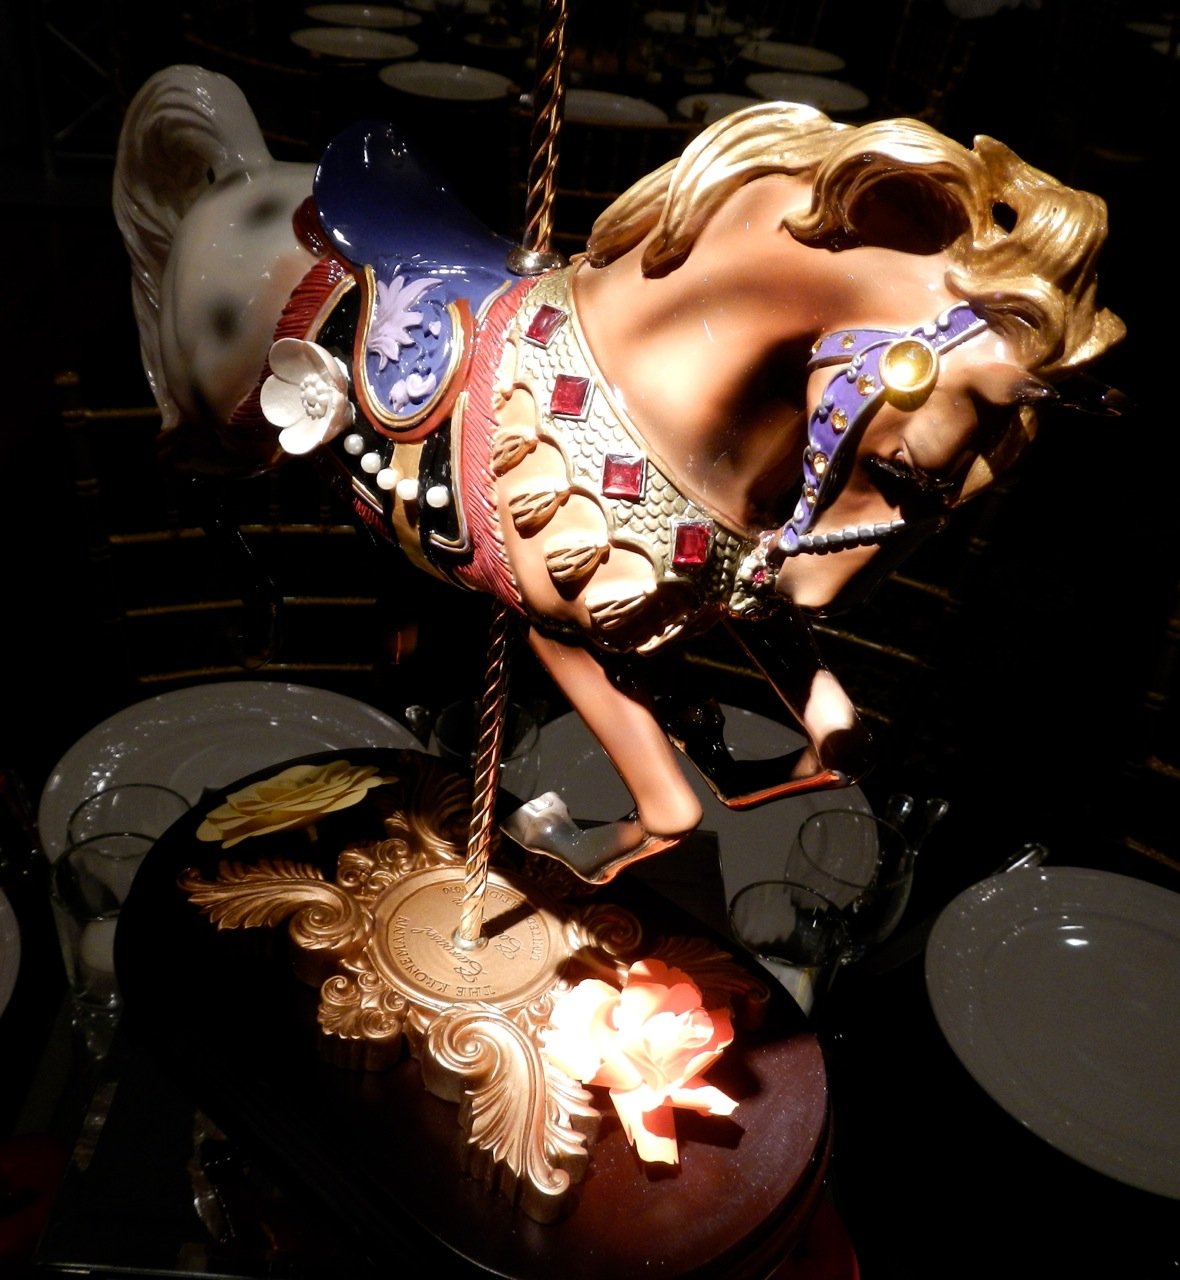 A gorgeous carousel horse statue represented the iconic Central Park Carousel.